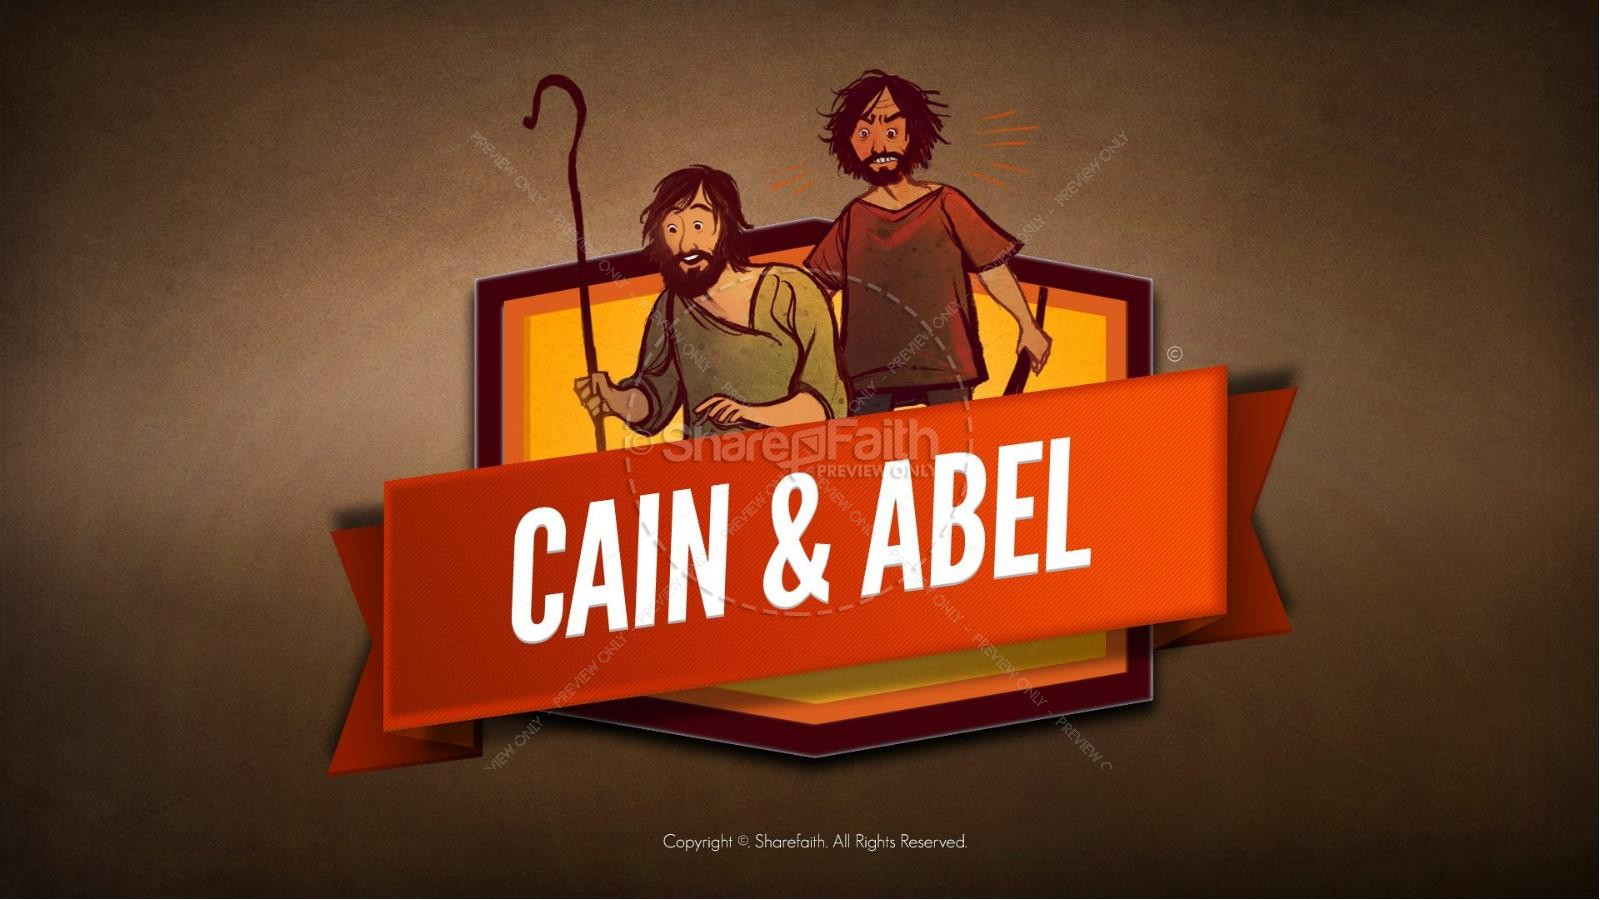 Bible study on cain and abel